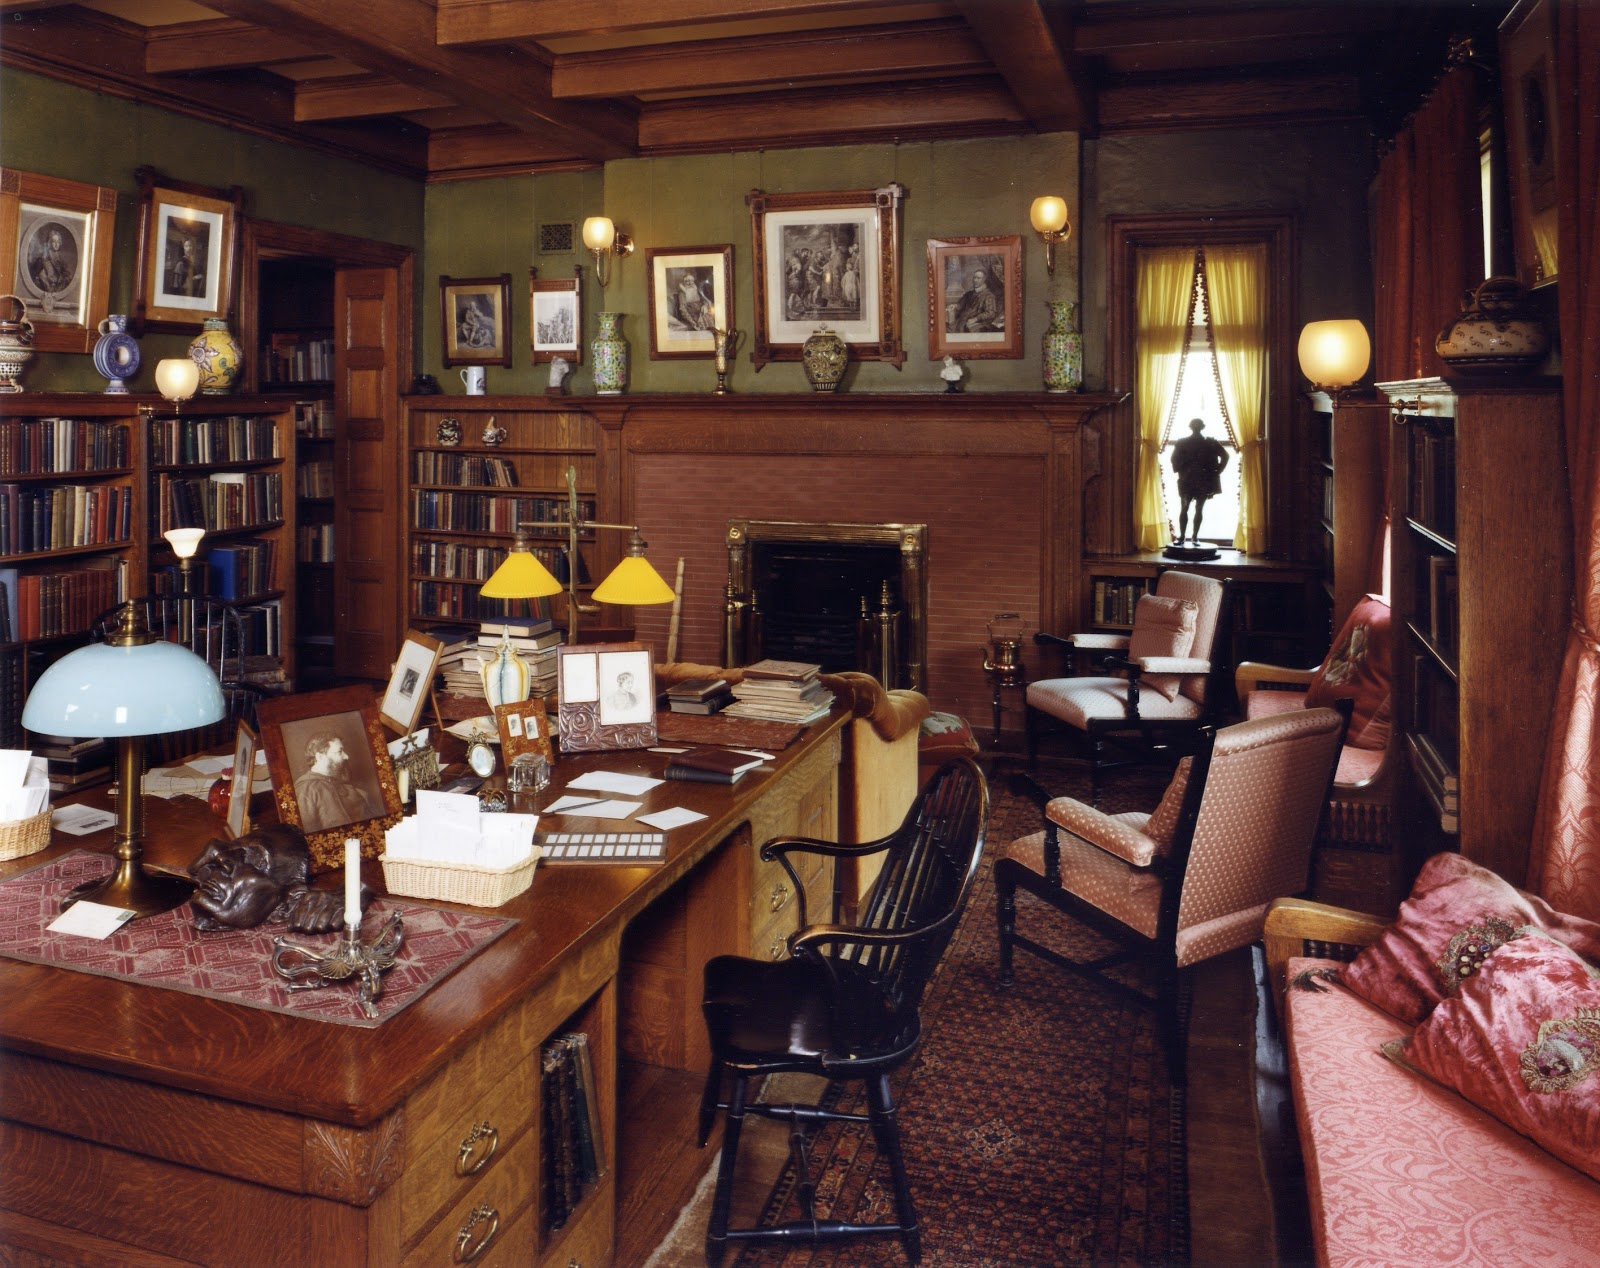 Join me for a tour of glessner house museum wendycity for English library decor